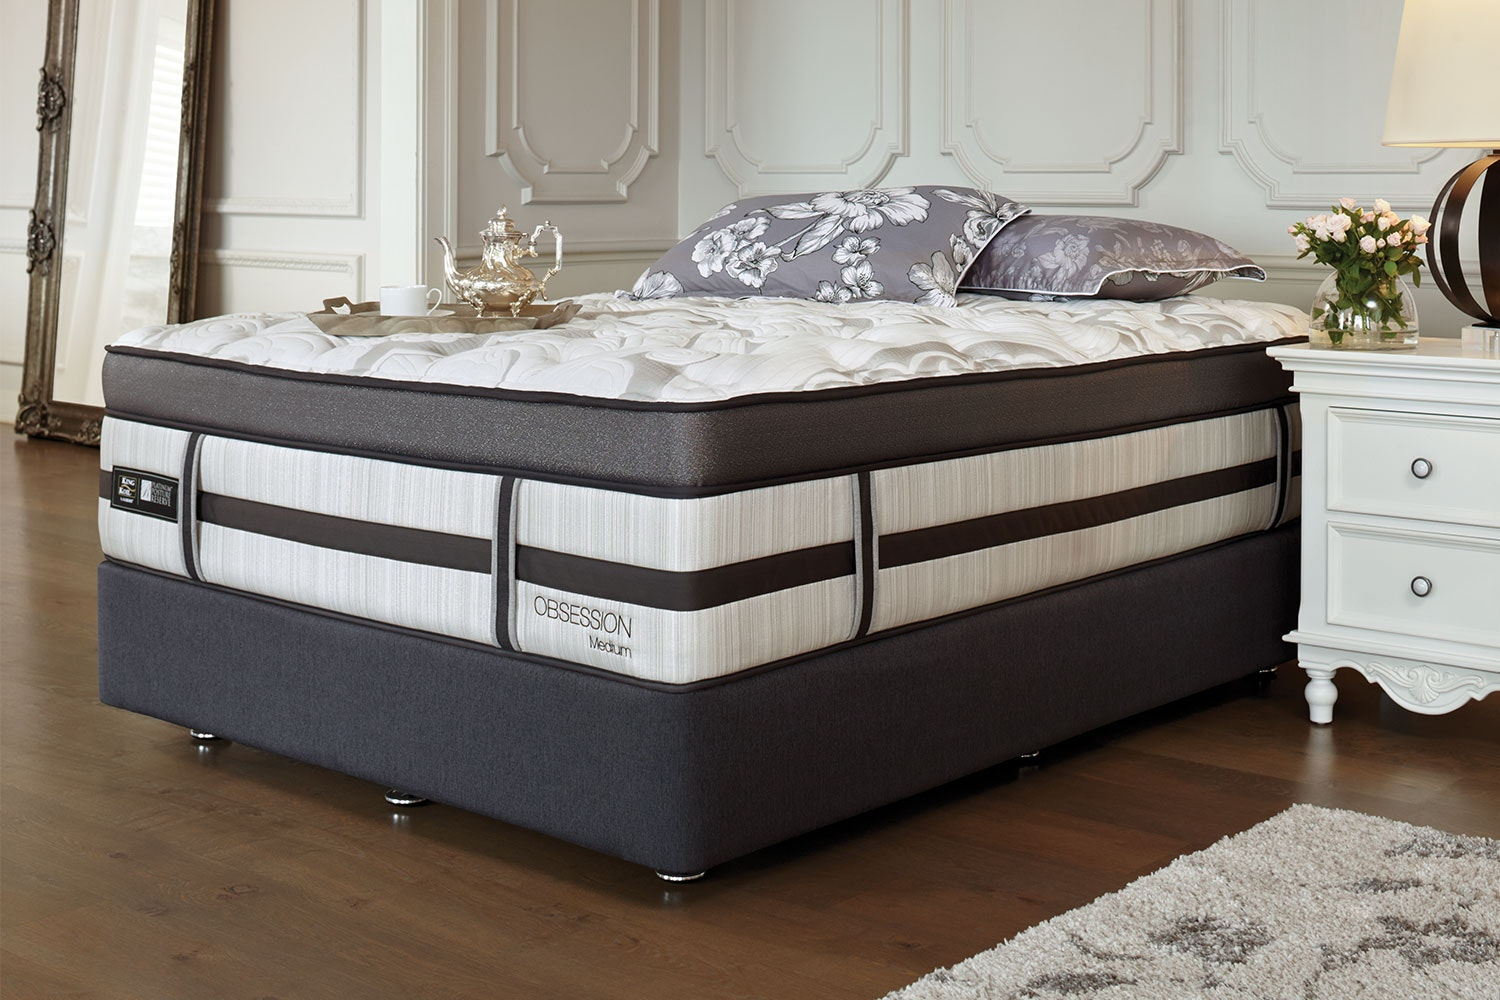 Obsession Medium King Bed by King Koil